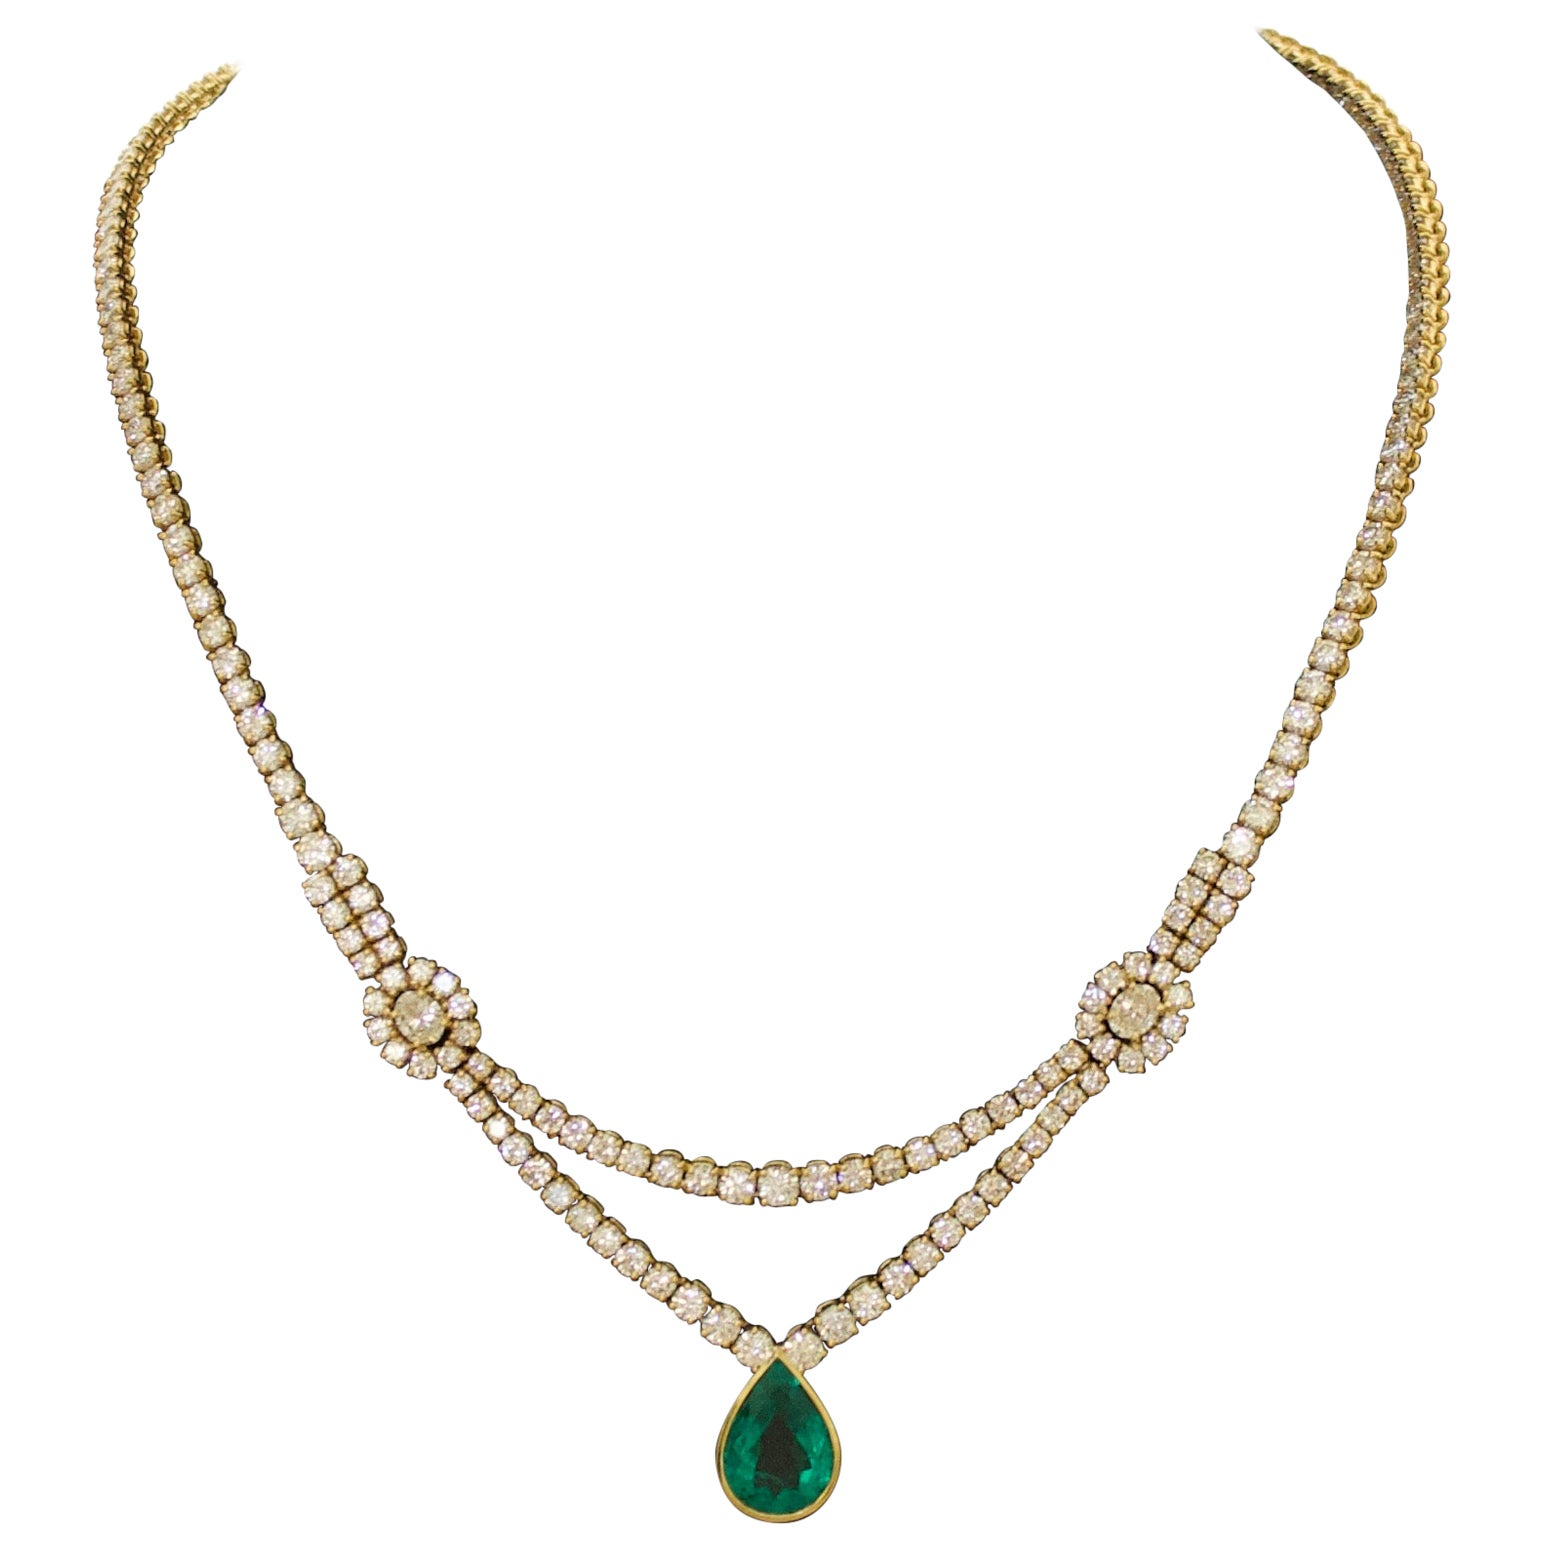 Important Emerald and Diamond Necklace in 18 Karat Yellow Gold